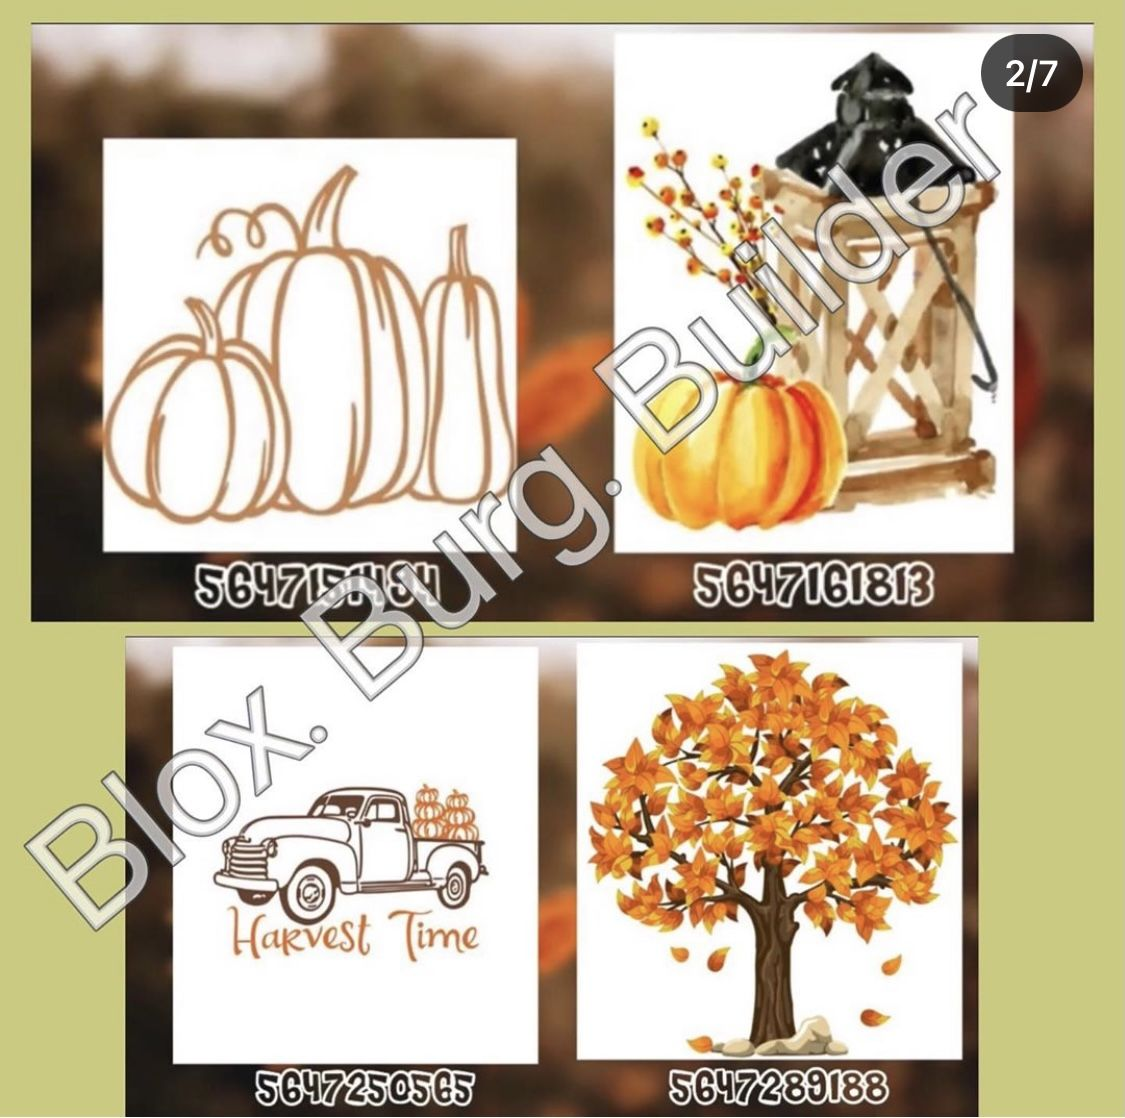 NOT MINE !! in 2020 Fall decal, Custom decals, Decal design